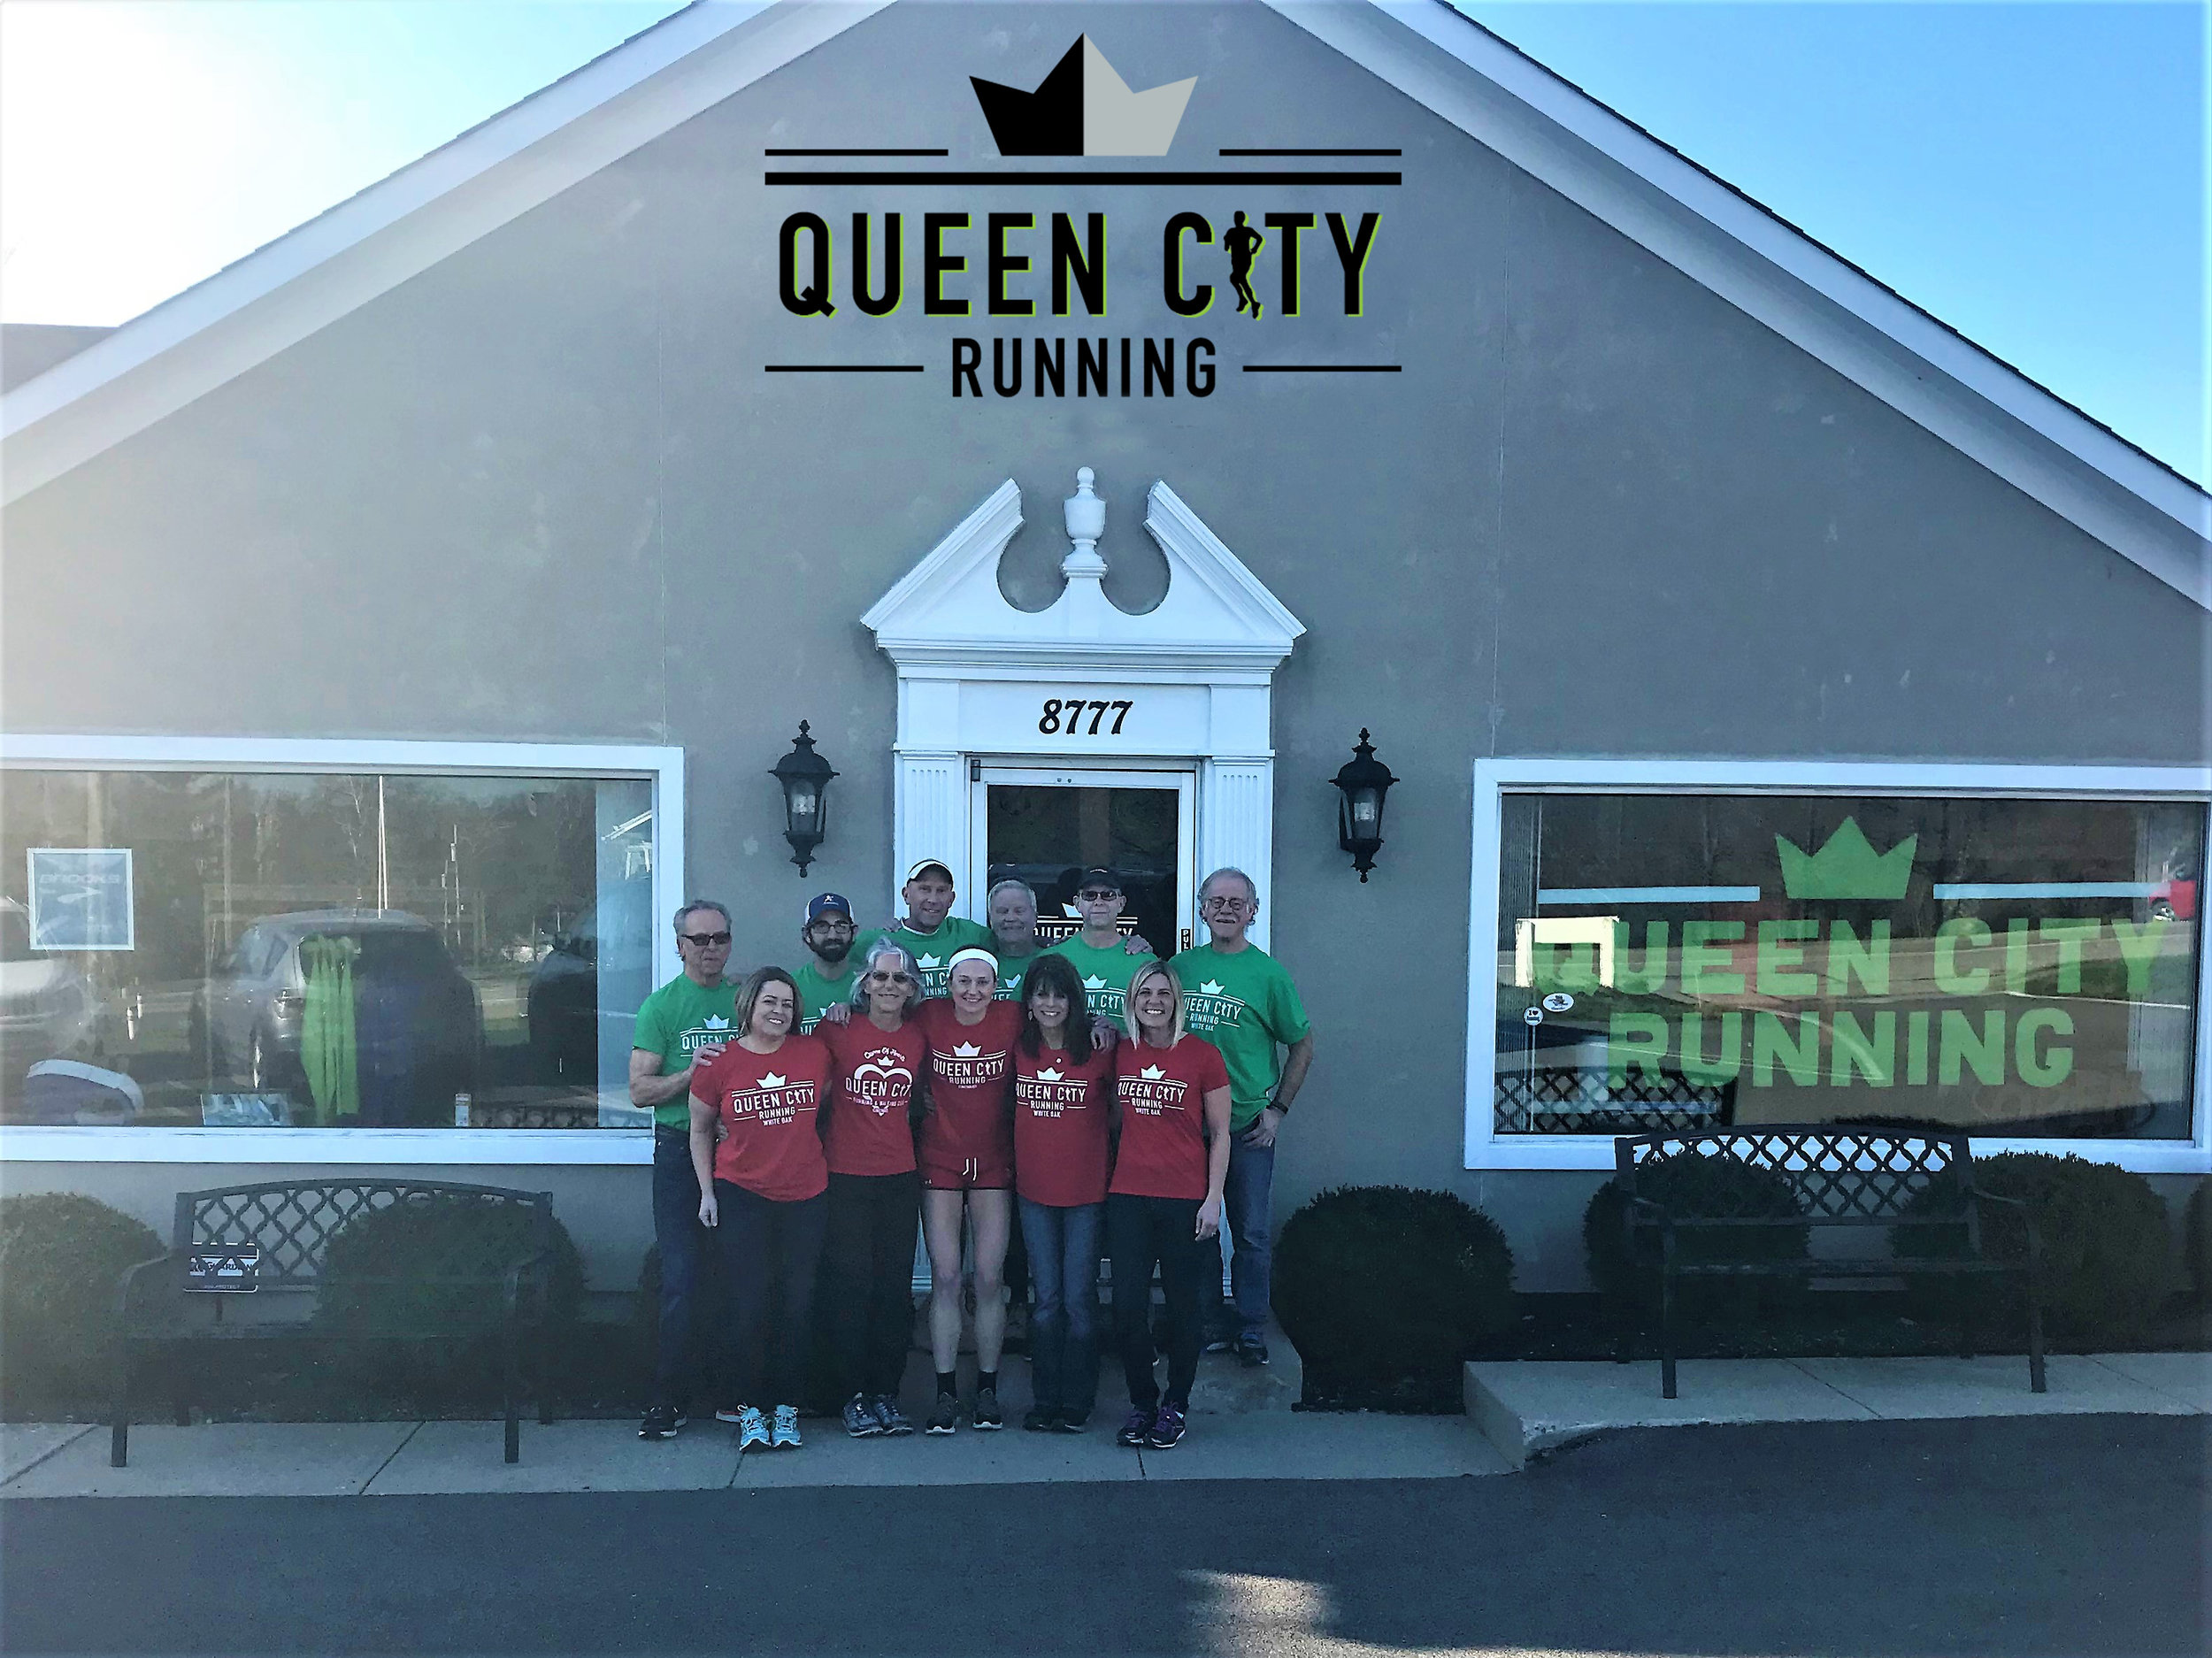 We meet you where ever you're at on your personal running path. We're here to support you.   Queen City North is located at:    8777 Cincinnati-Dayton Road West Chester, OH 45069 Phone: 513-942-5005 Email:  hello@queencityrunning.com